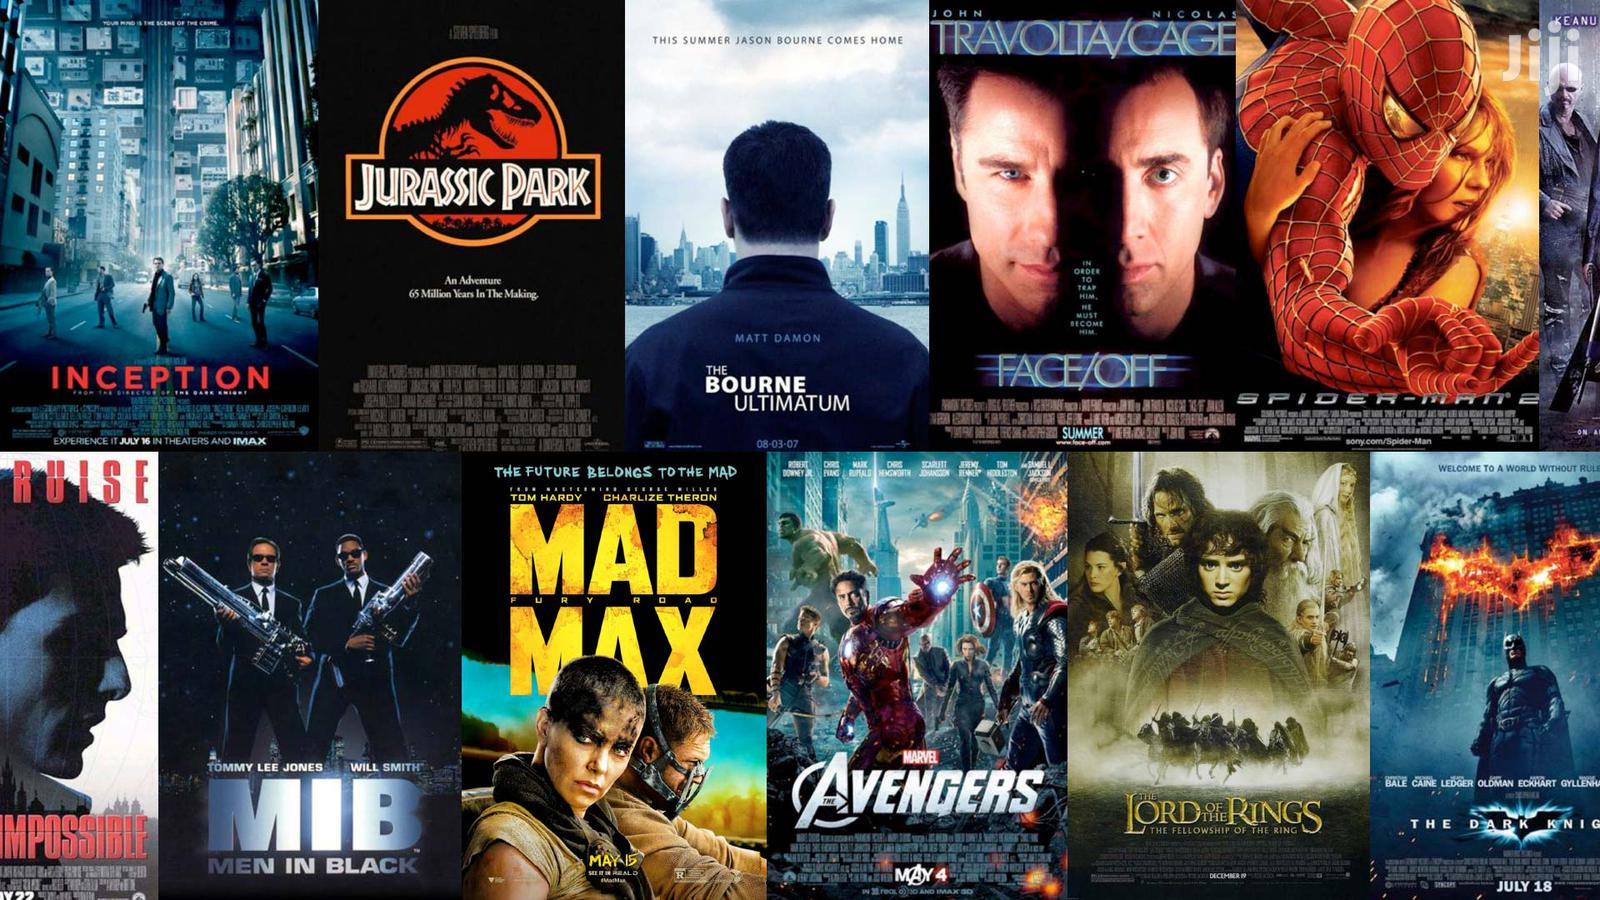 HD Movies, 4K & 3D Movies, Documentaries, Music Videos | CDs & DVDs for sale in Kampala, Central Region, Uganda